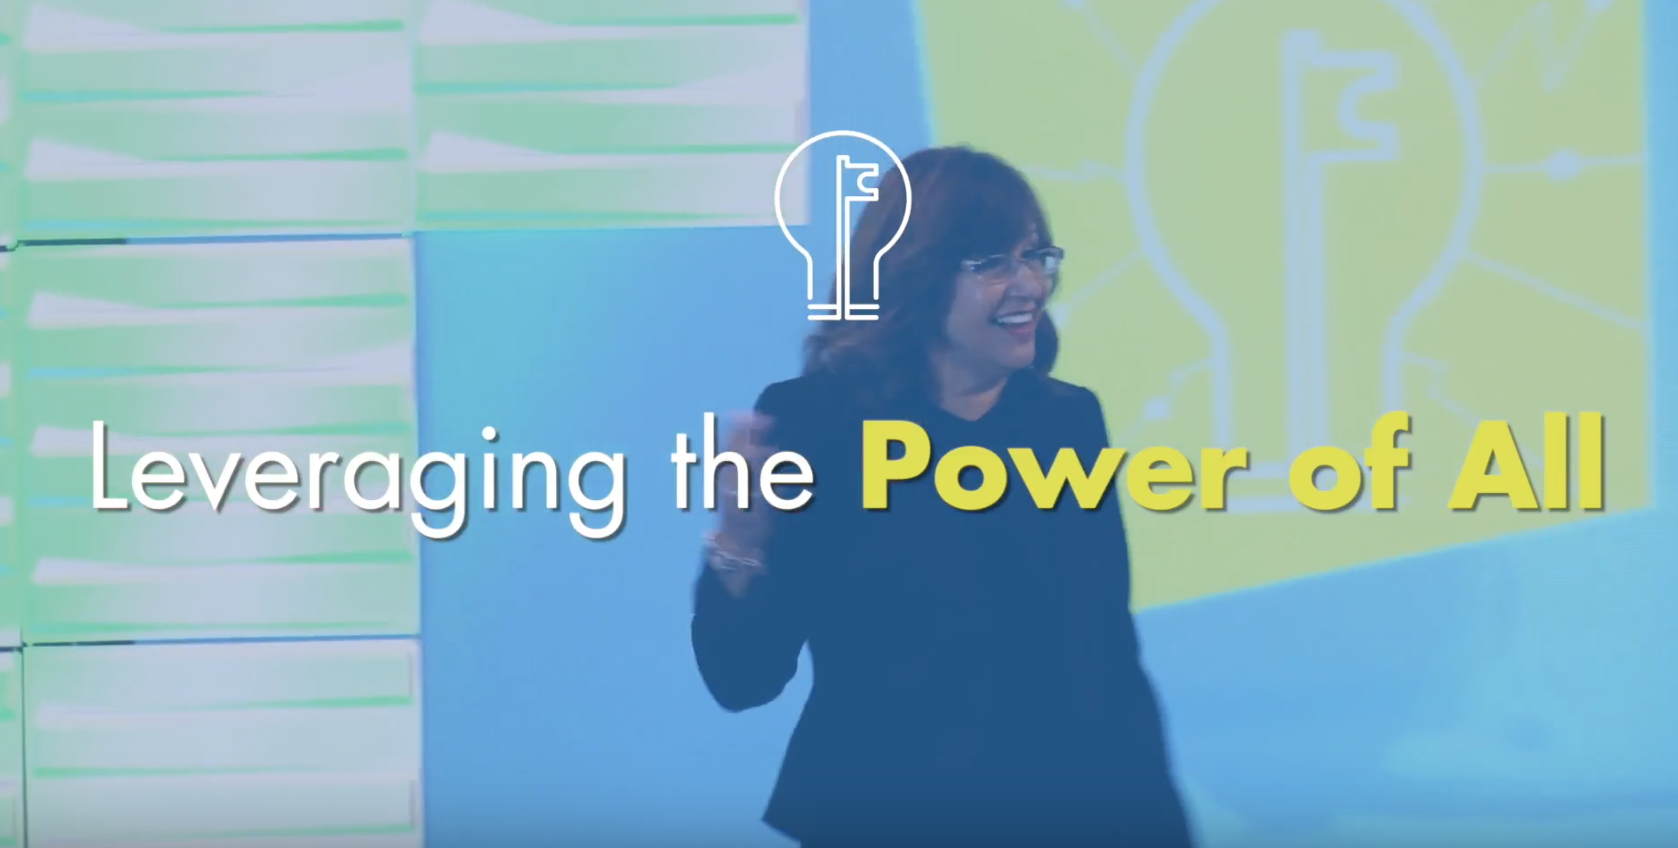 Conferencia: Leveraging the Power of All